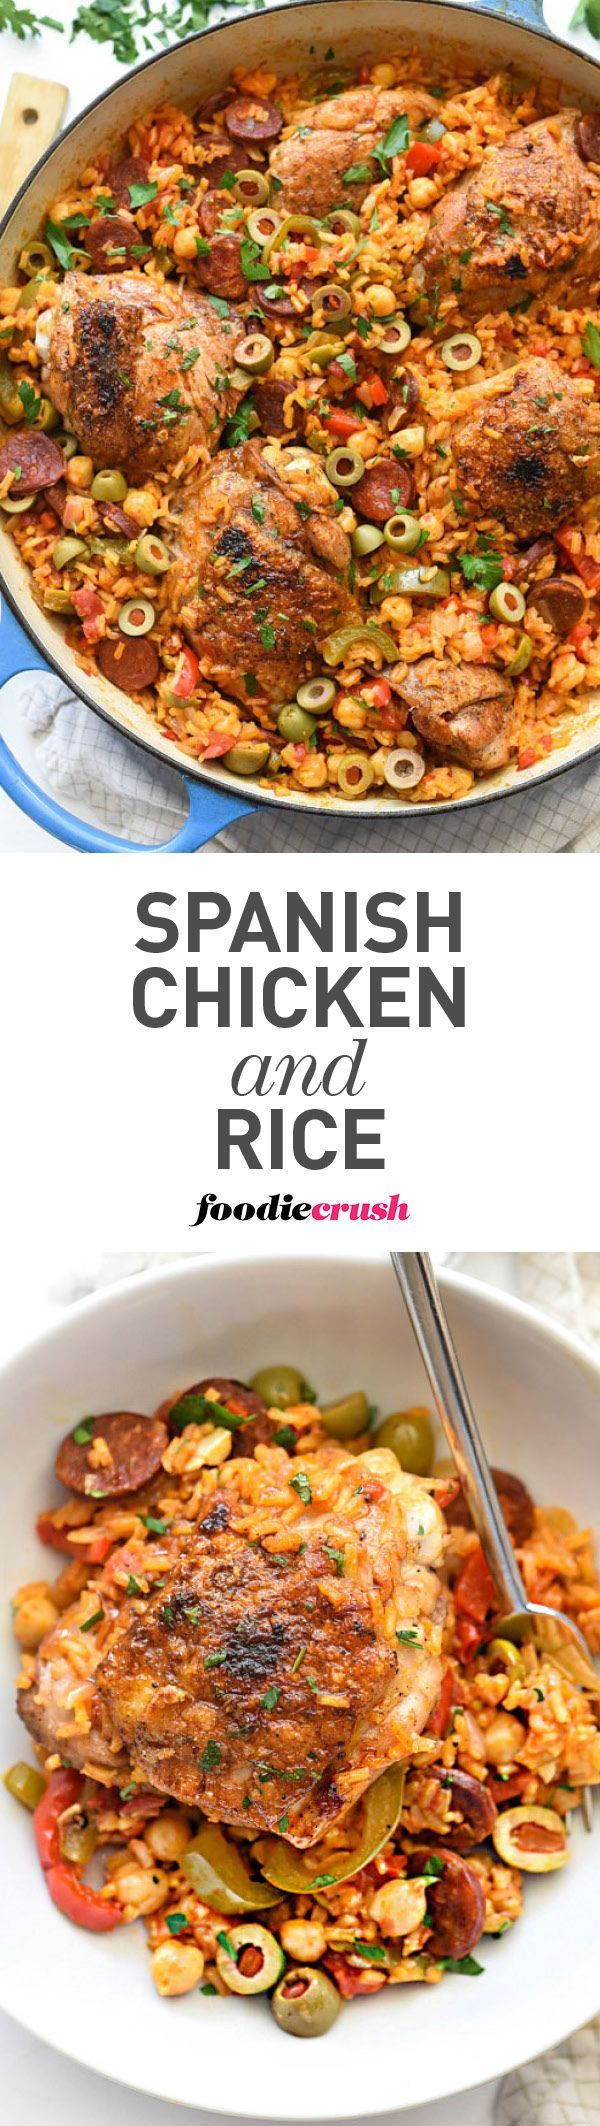 Chicken thighs are nestled in Spanish-flavored rice with Spanish chorizo, green olives, and garbanzo beans for the ultimate one-pot meal | foodiecrush.com